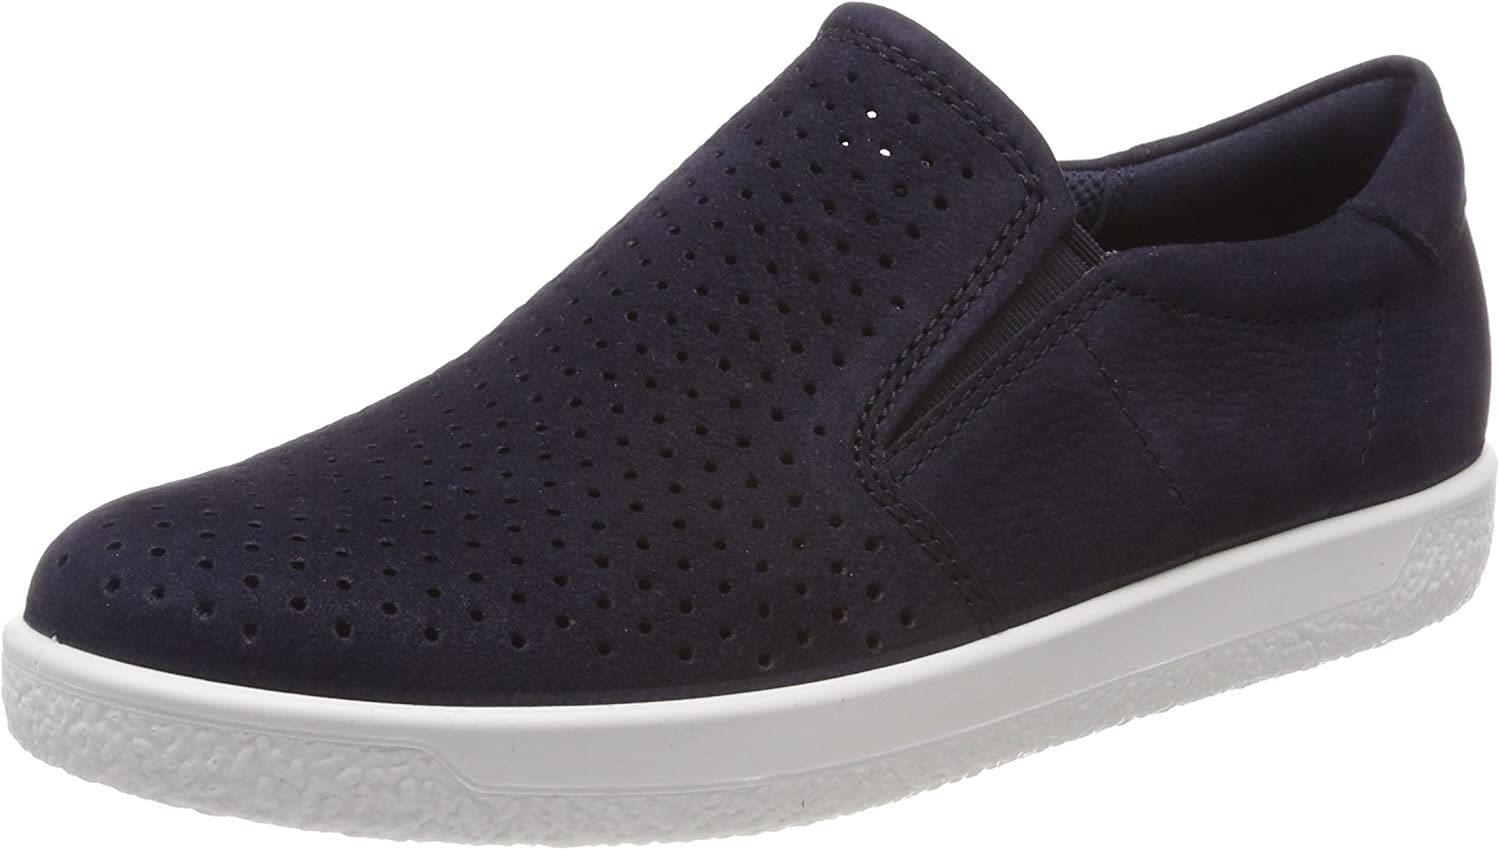 ECCO shoes Women's Soft 1 Slip on Perf Fashion Sneakers, Night Sky, 36 EU  5.5-6 M US